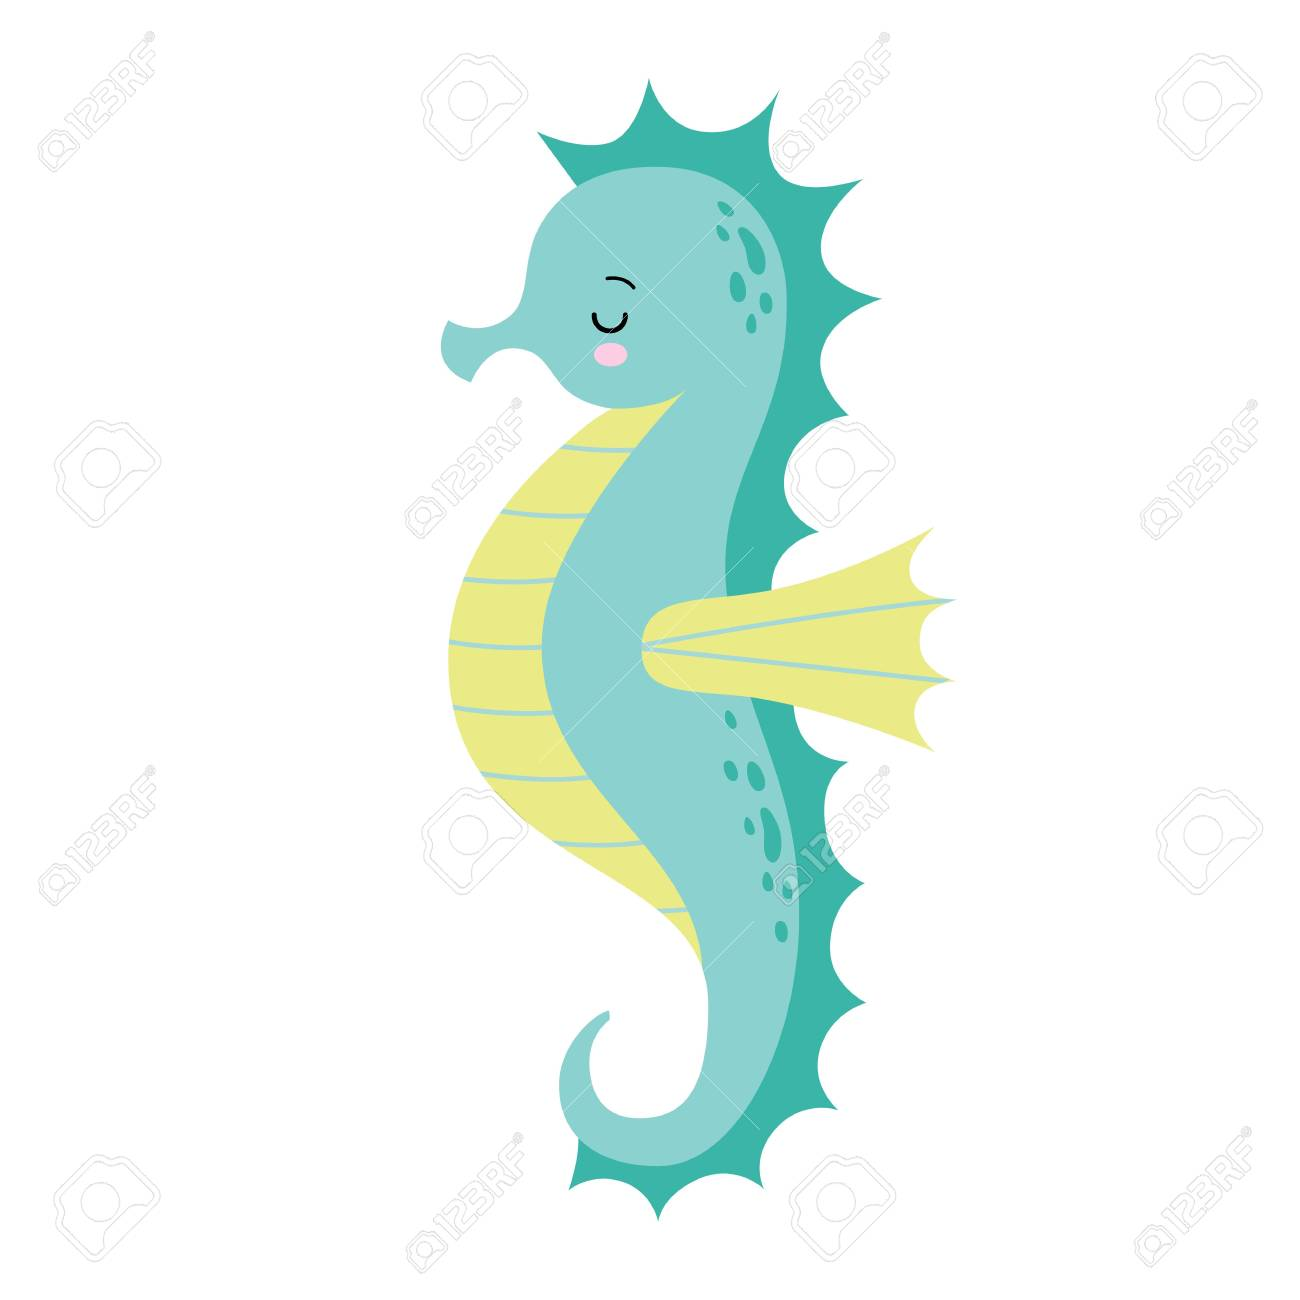 Cute Cartoon Sleeping Sea Horse Isolated Seahorse On A White Royalty Free Cliparts Vectors And Stock Illustration Image 125272967